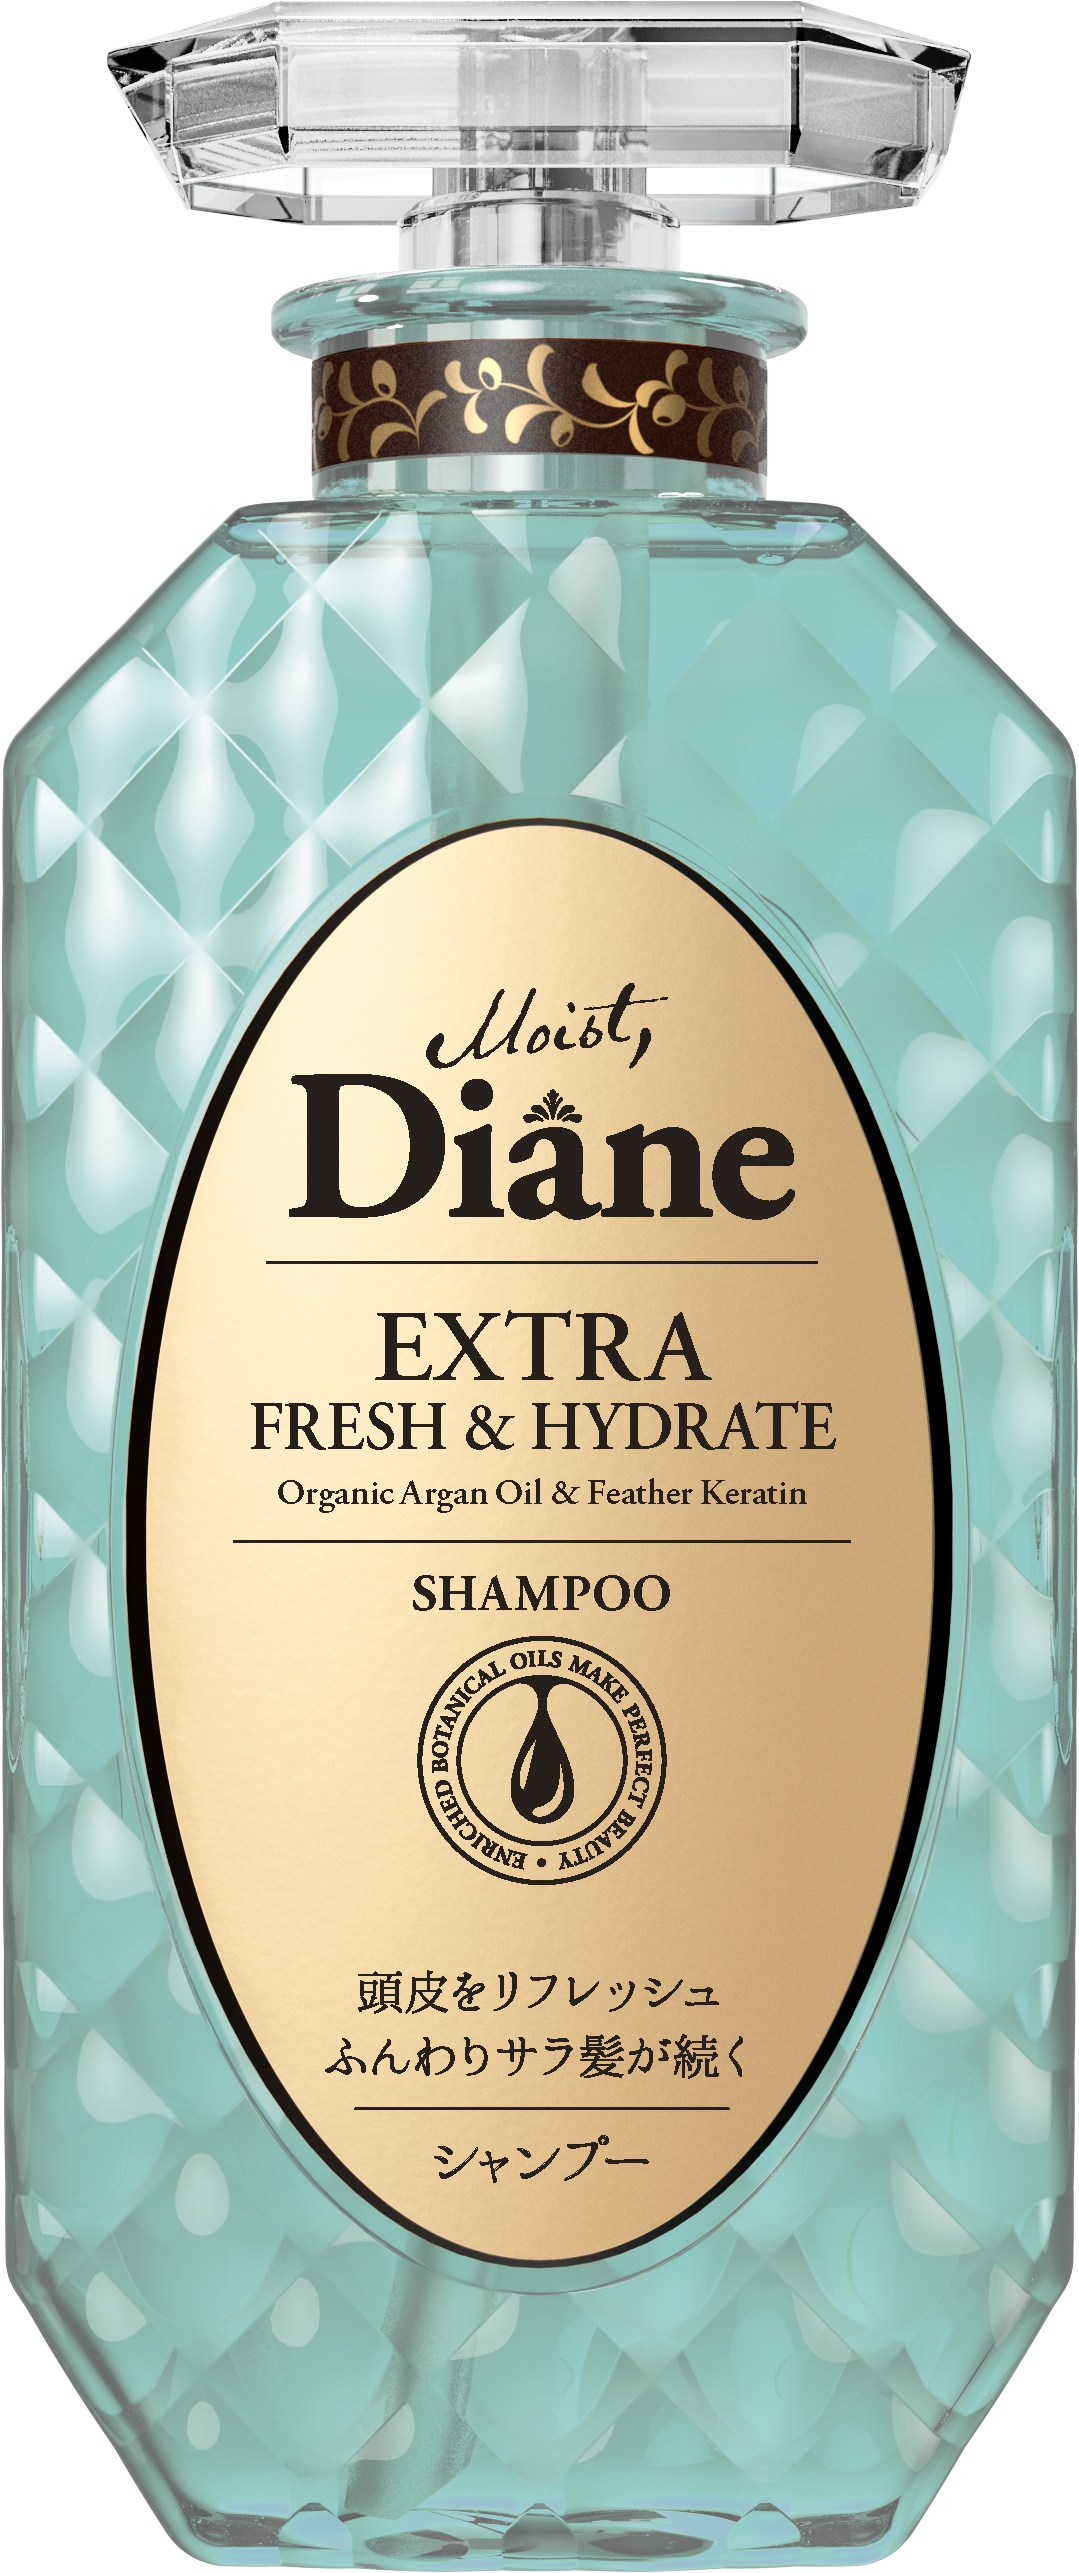 Extra Fresh And Hydrate Shampoo